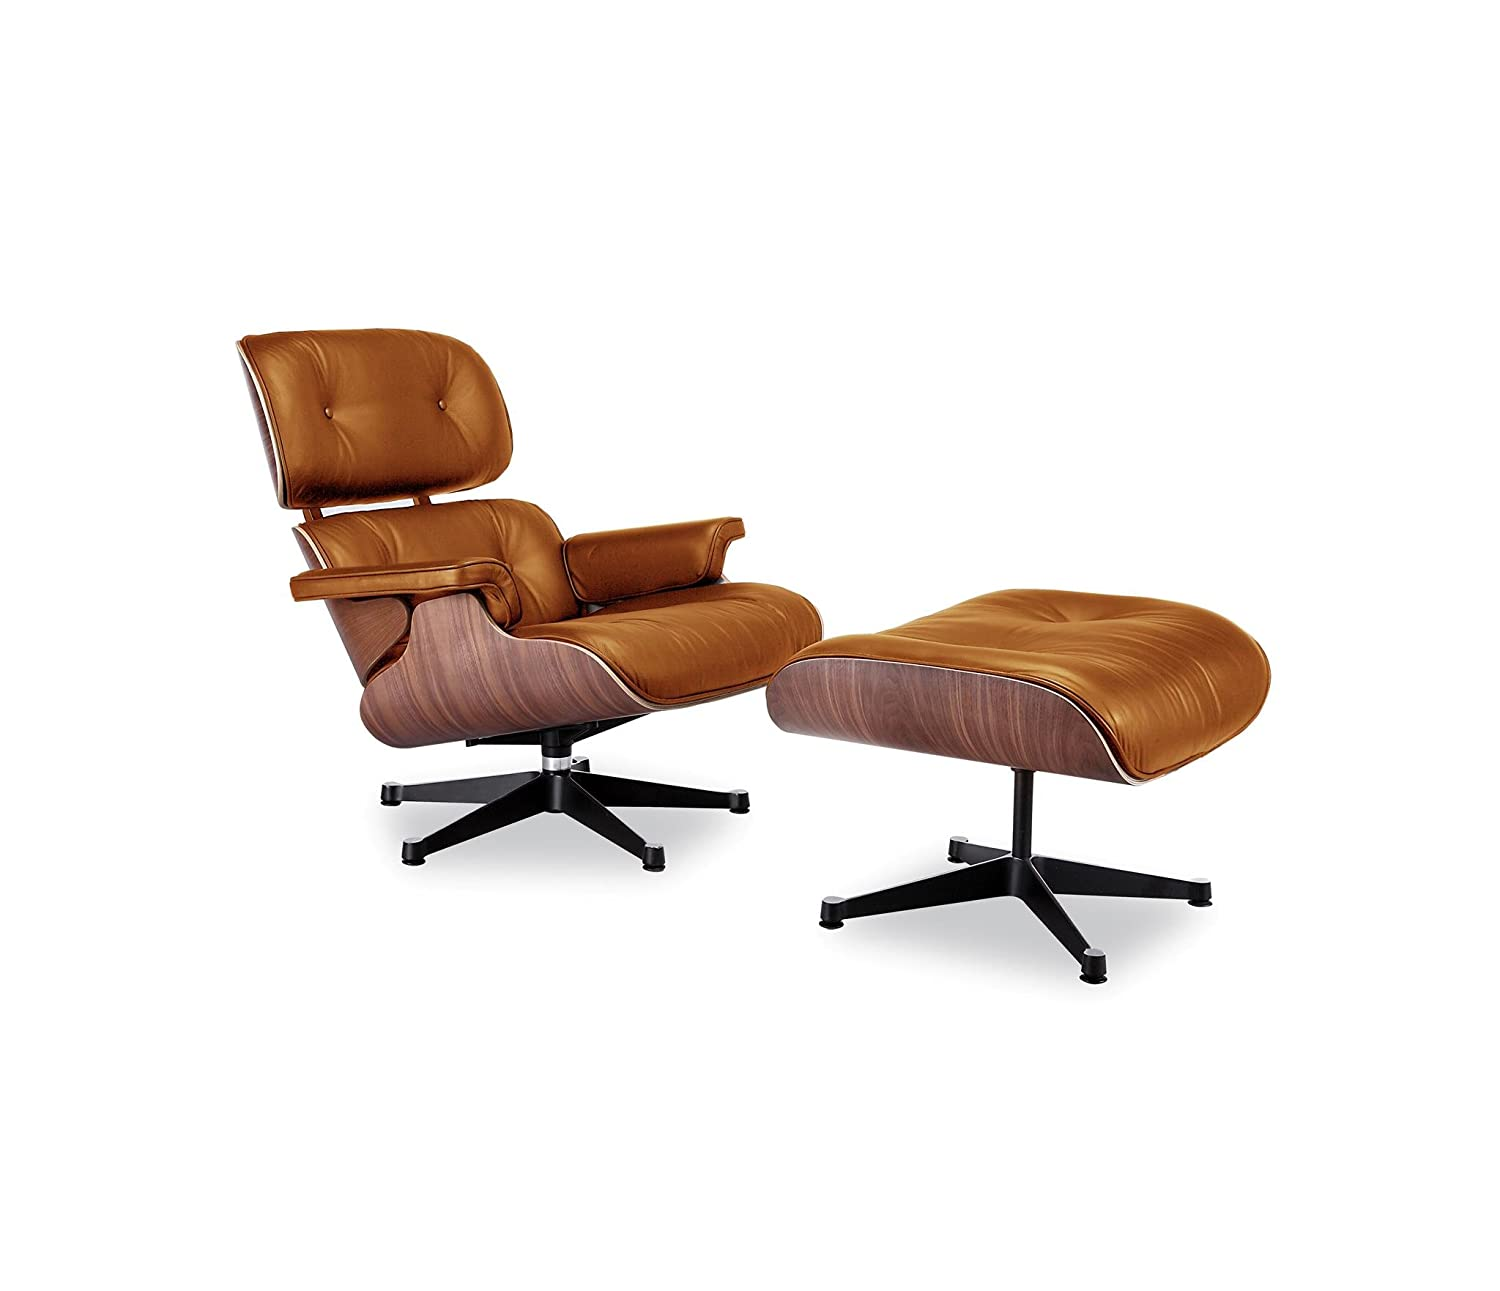 living herman miller chairs and chair ottomans eames lounge ottoman